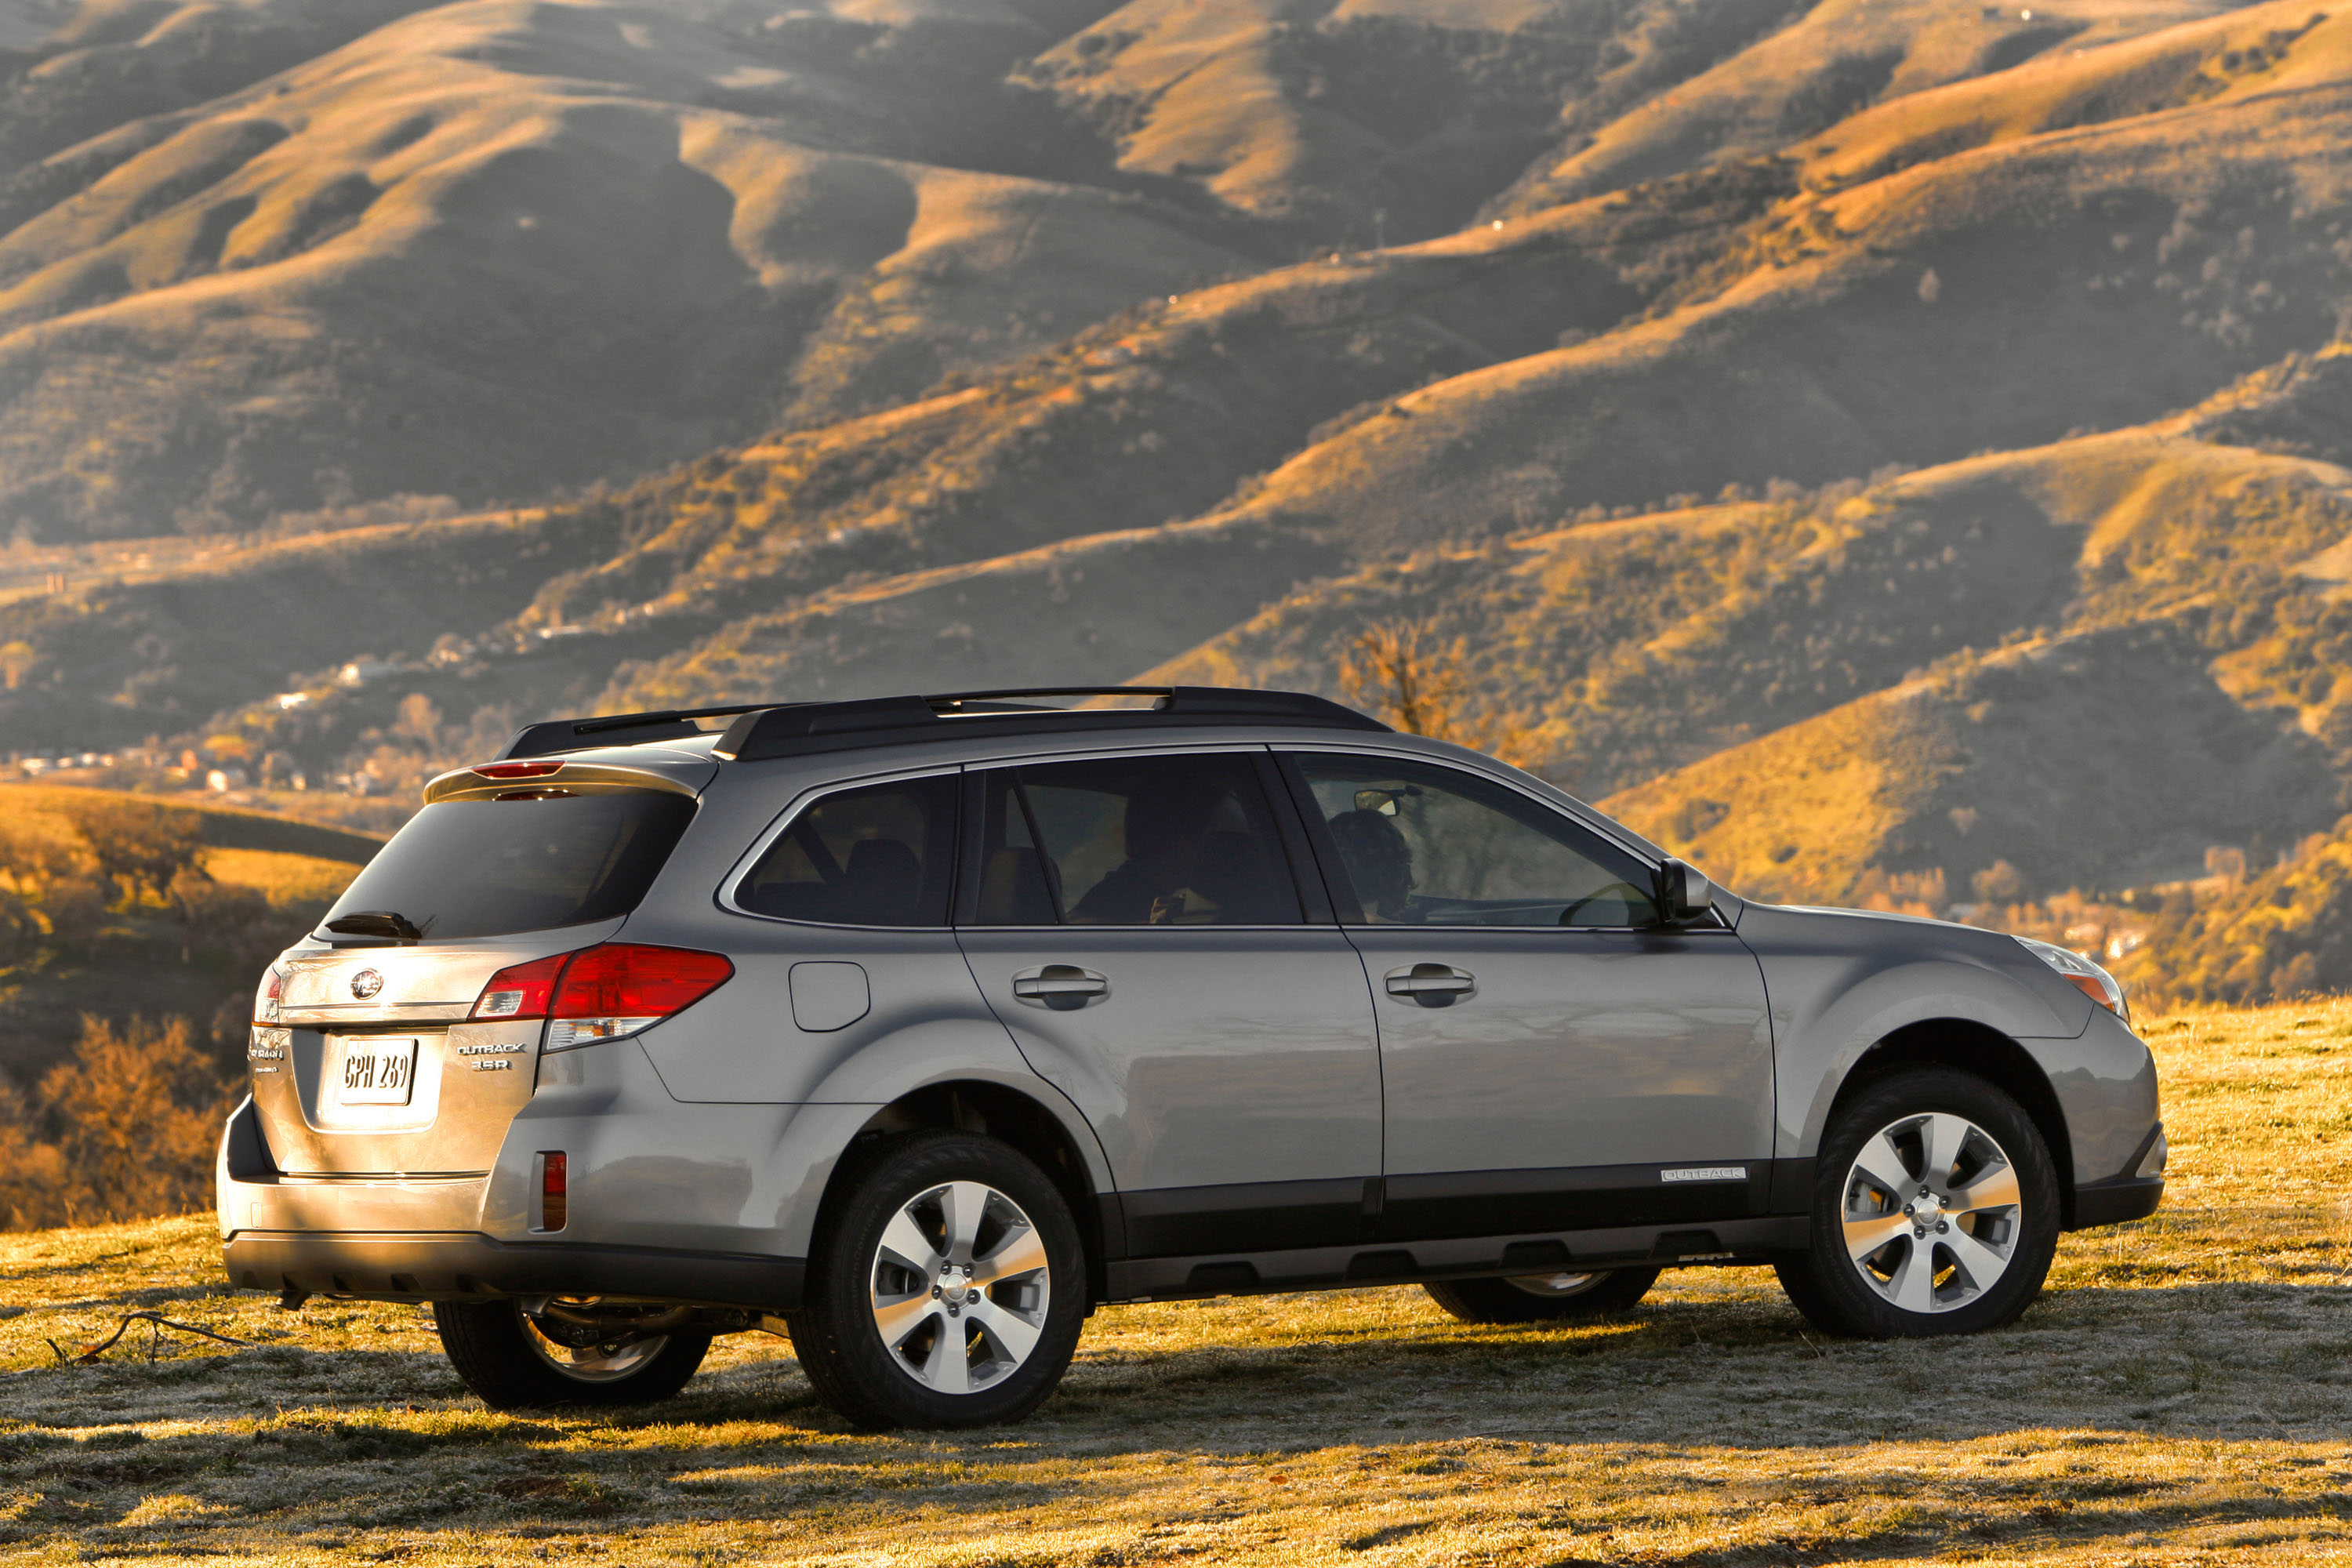 2010 subaru outback epa fuel economy results. Black Bedroom Furniture Sets. Home Design Ideas